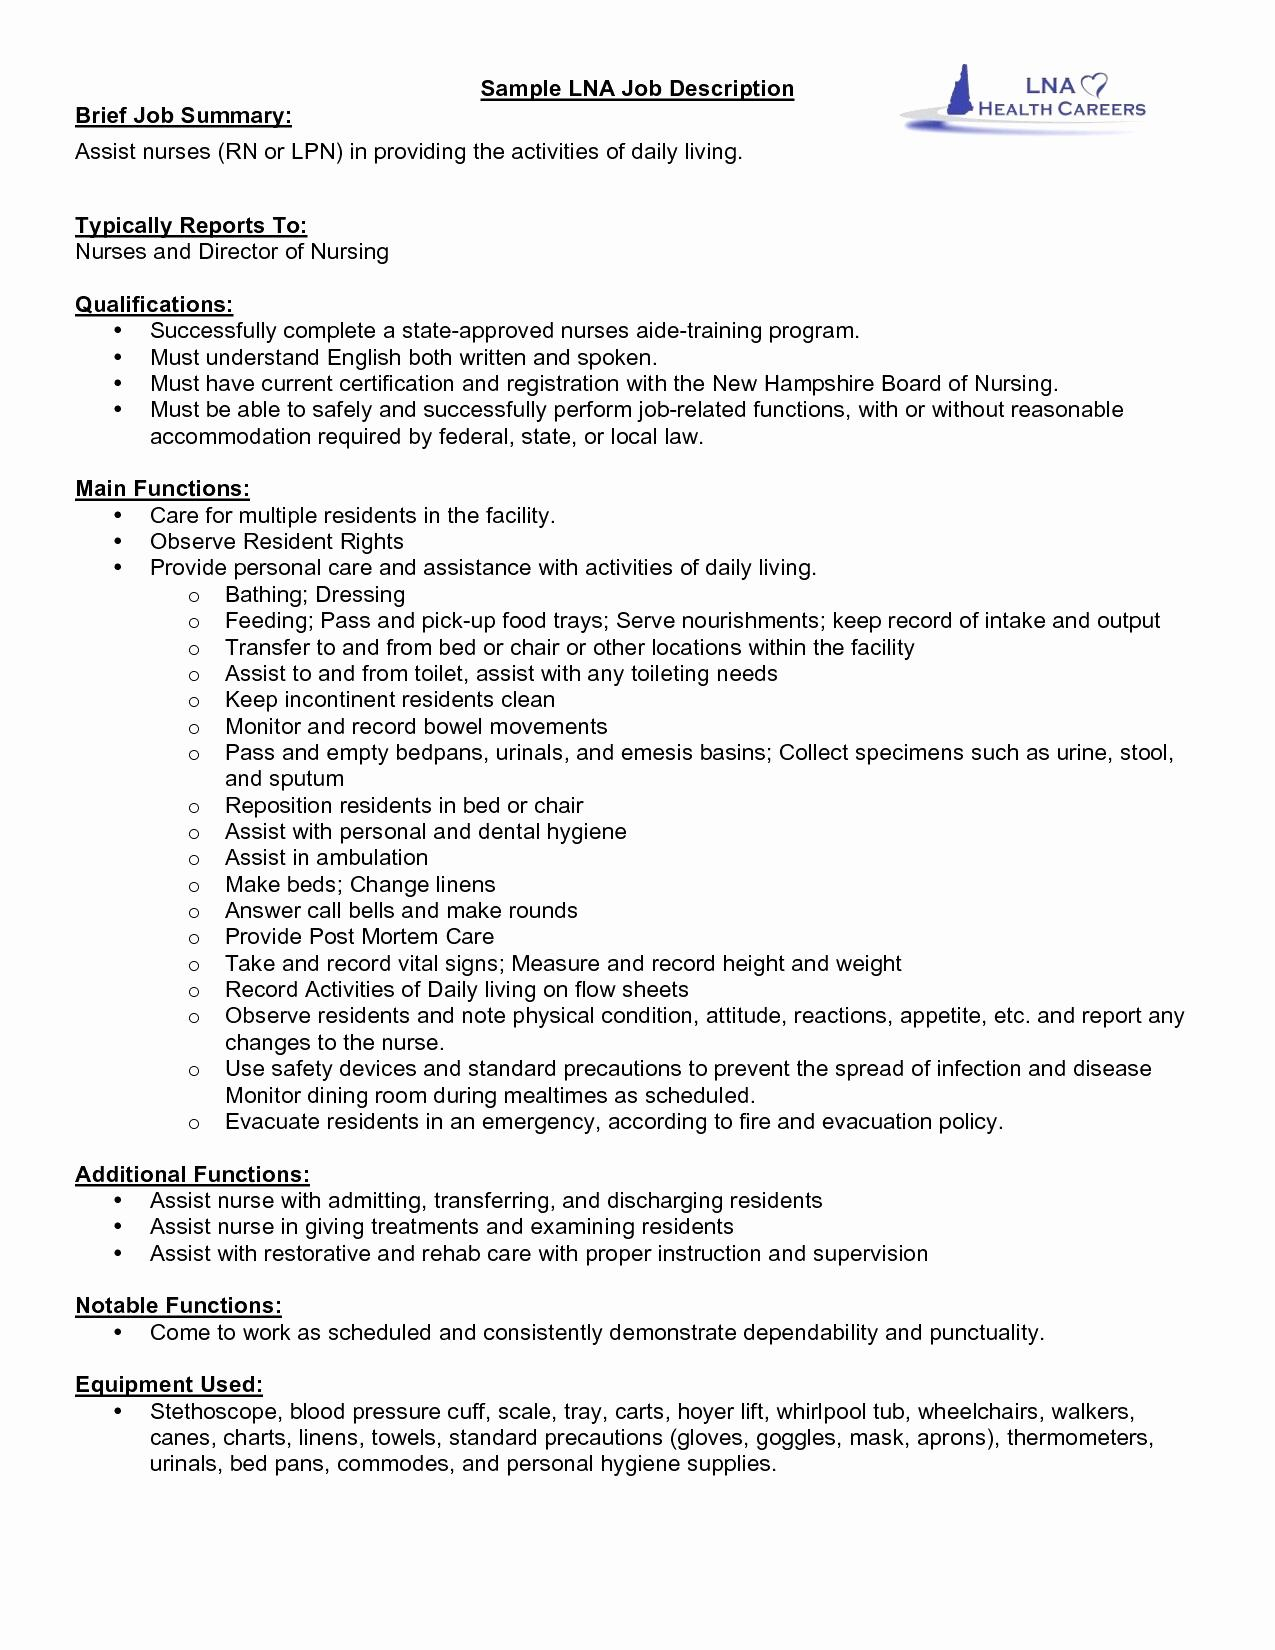 Experienced Rn Resume - Sample Federal Resume Best Federal Resume Awesome Experienced Rn